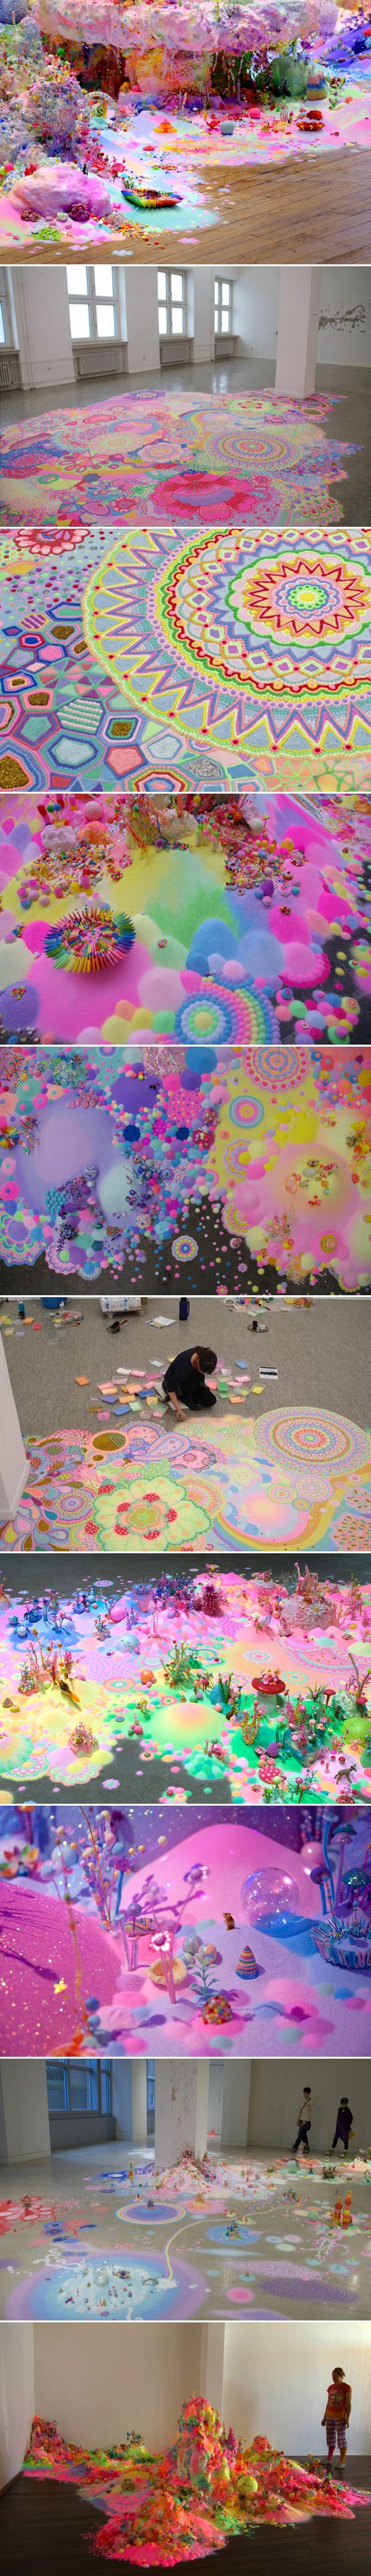 These installations have just made me sick with exitement - so amazing! http://www.pipandpop.com.au